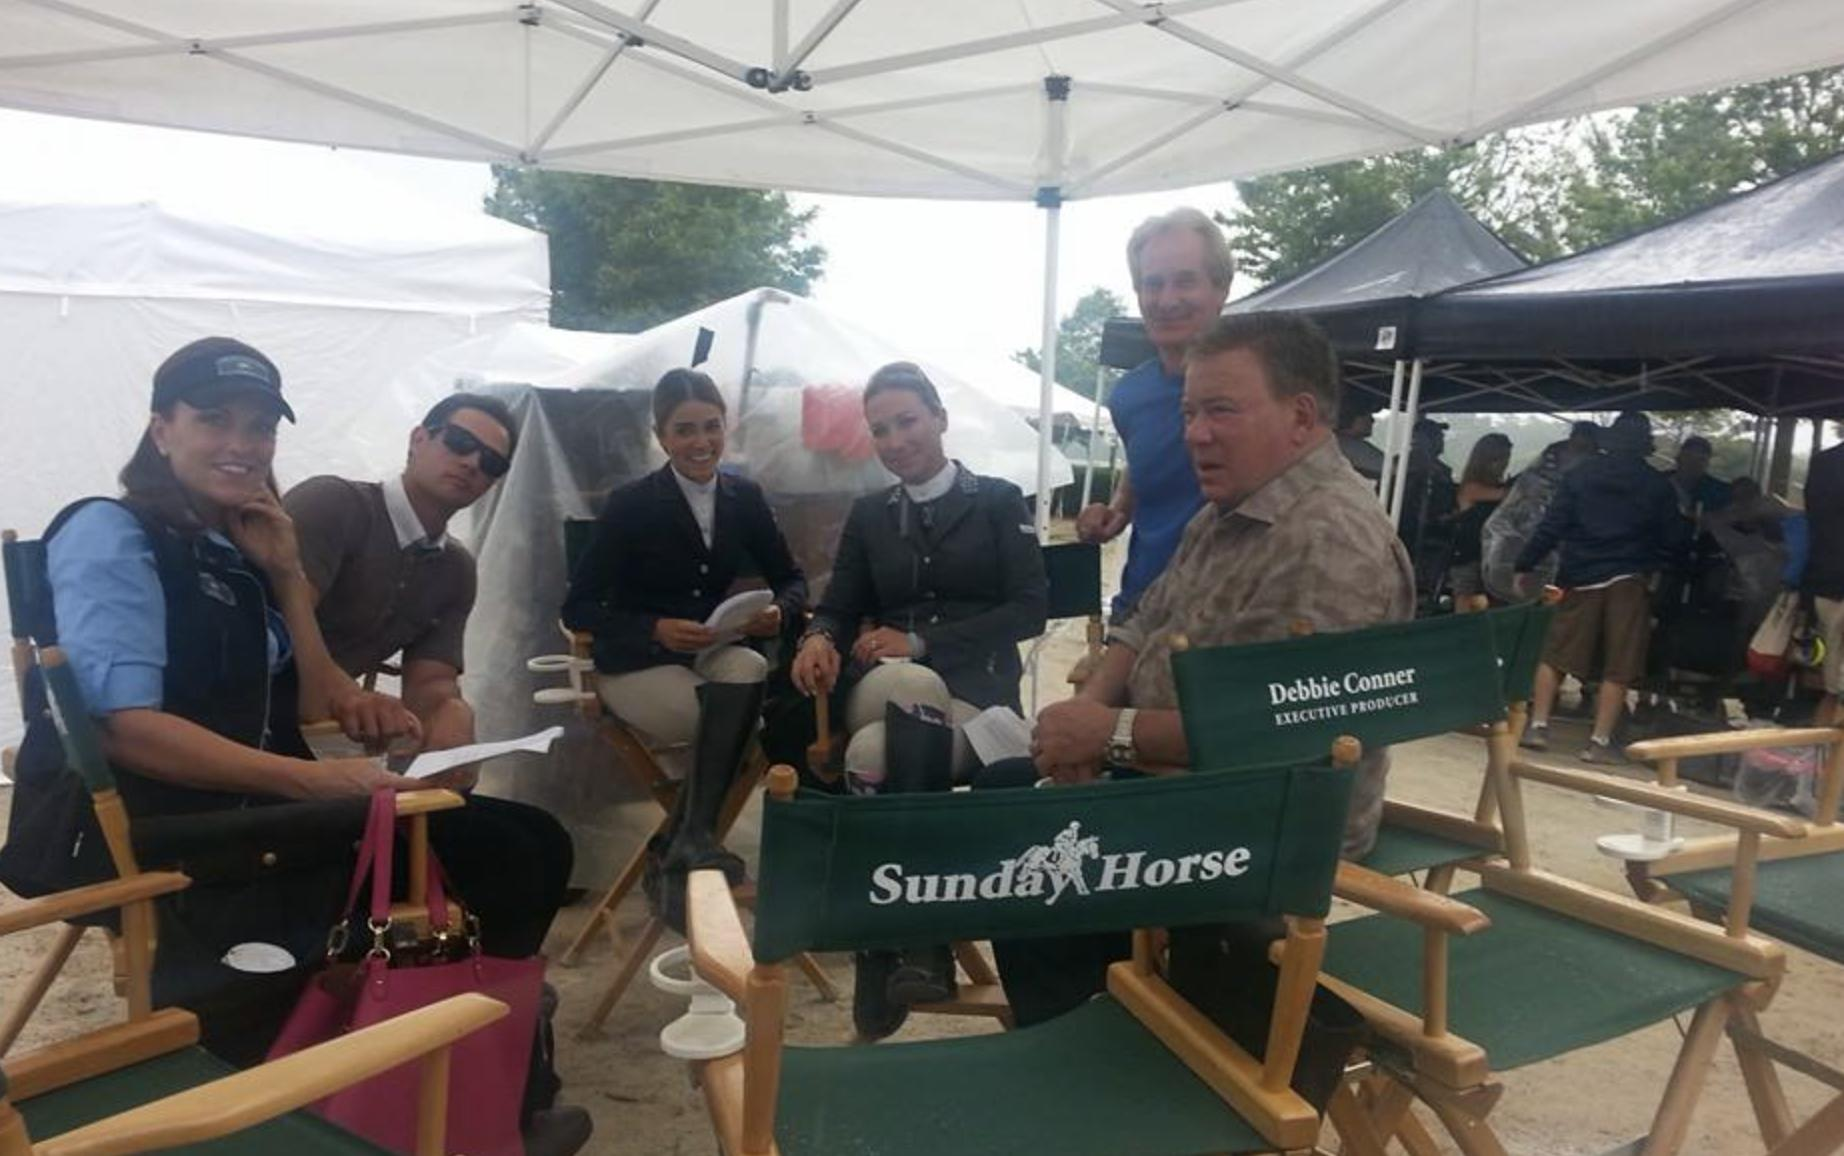 William Shatner, Georgina Armstrong, Ronnie D. Clemmer, Ryan Merriman, Nikki Reed, and Mandy June Turpin in A Sunday Horse (2016)